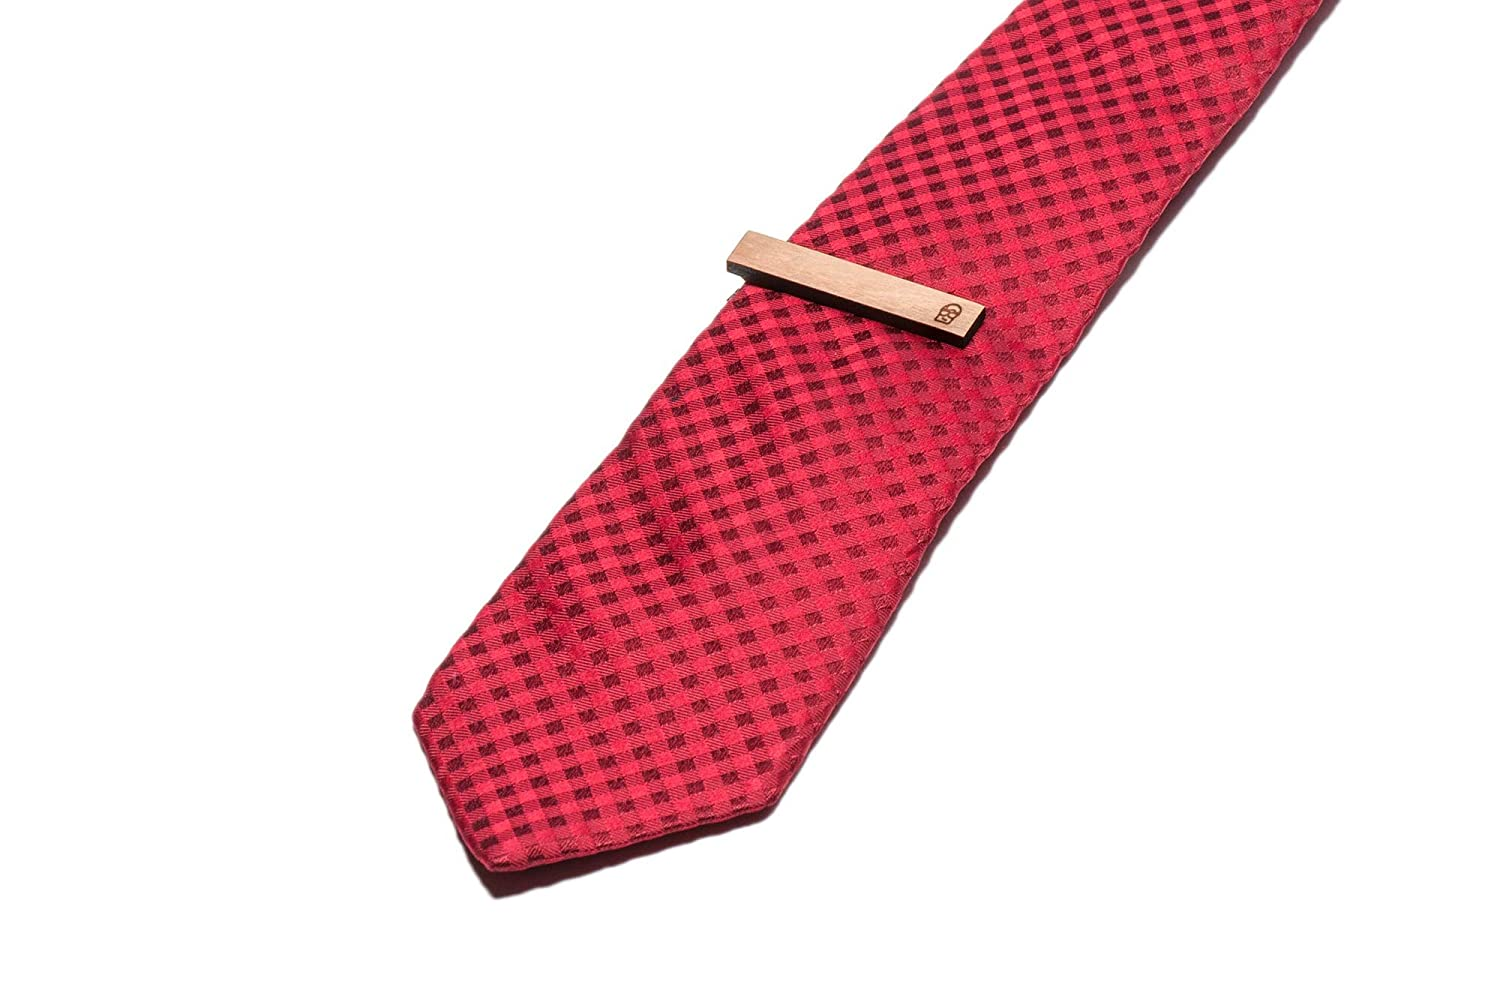 Cherry Wood Tie Bar Engraved in The USA Wooden Accessories Company Wooden Tie Clips with Laser Engraved Raver Design